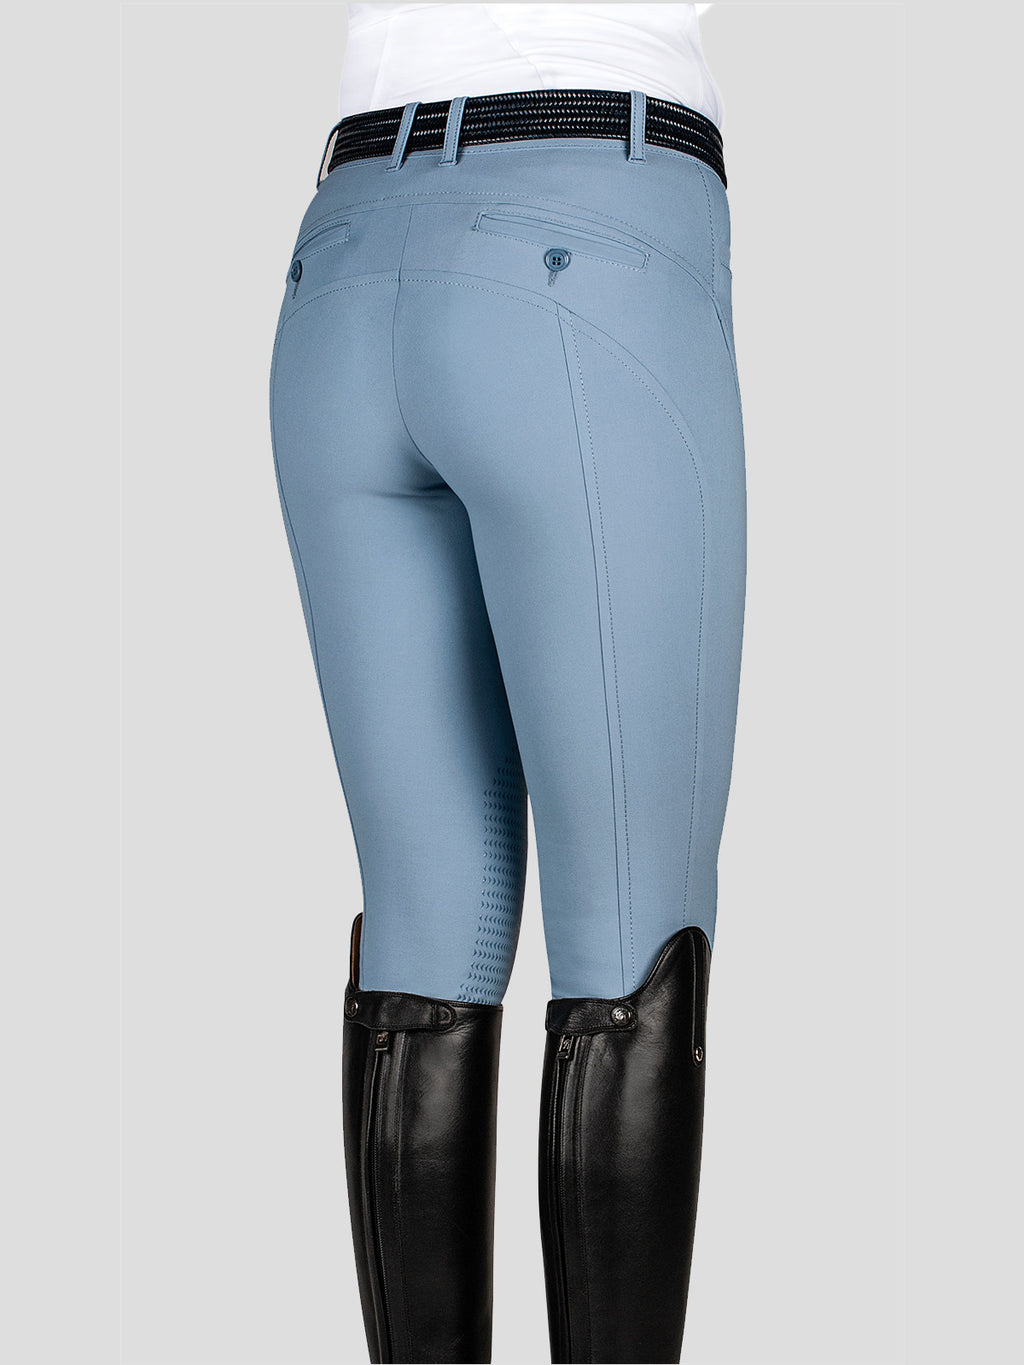 CUPRITE - WOMEN'S FEMININE CUT KNEE GRIP BREECHES